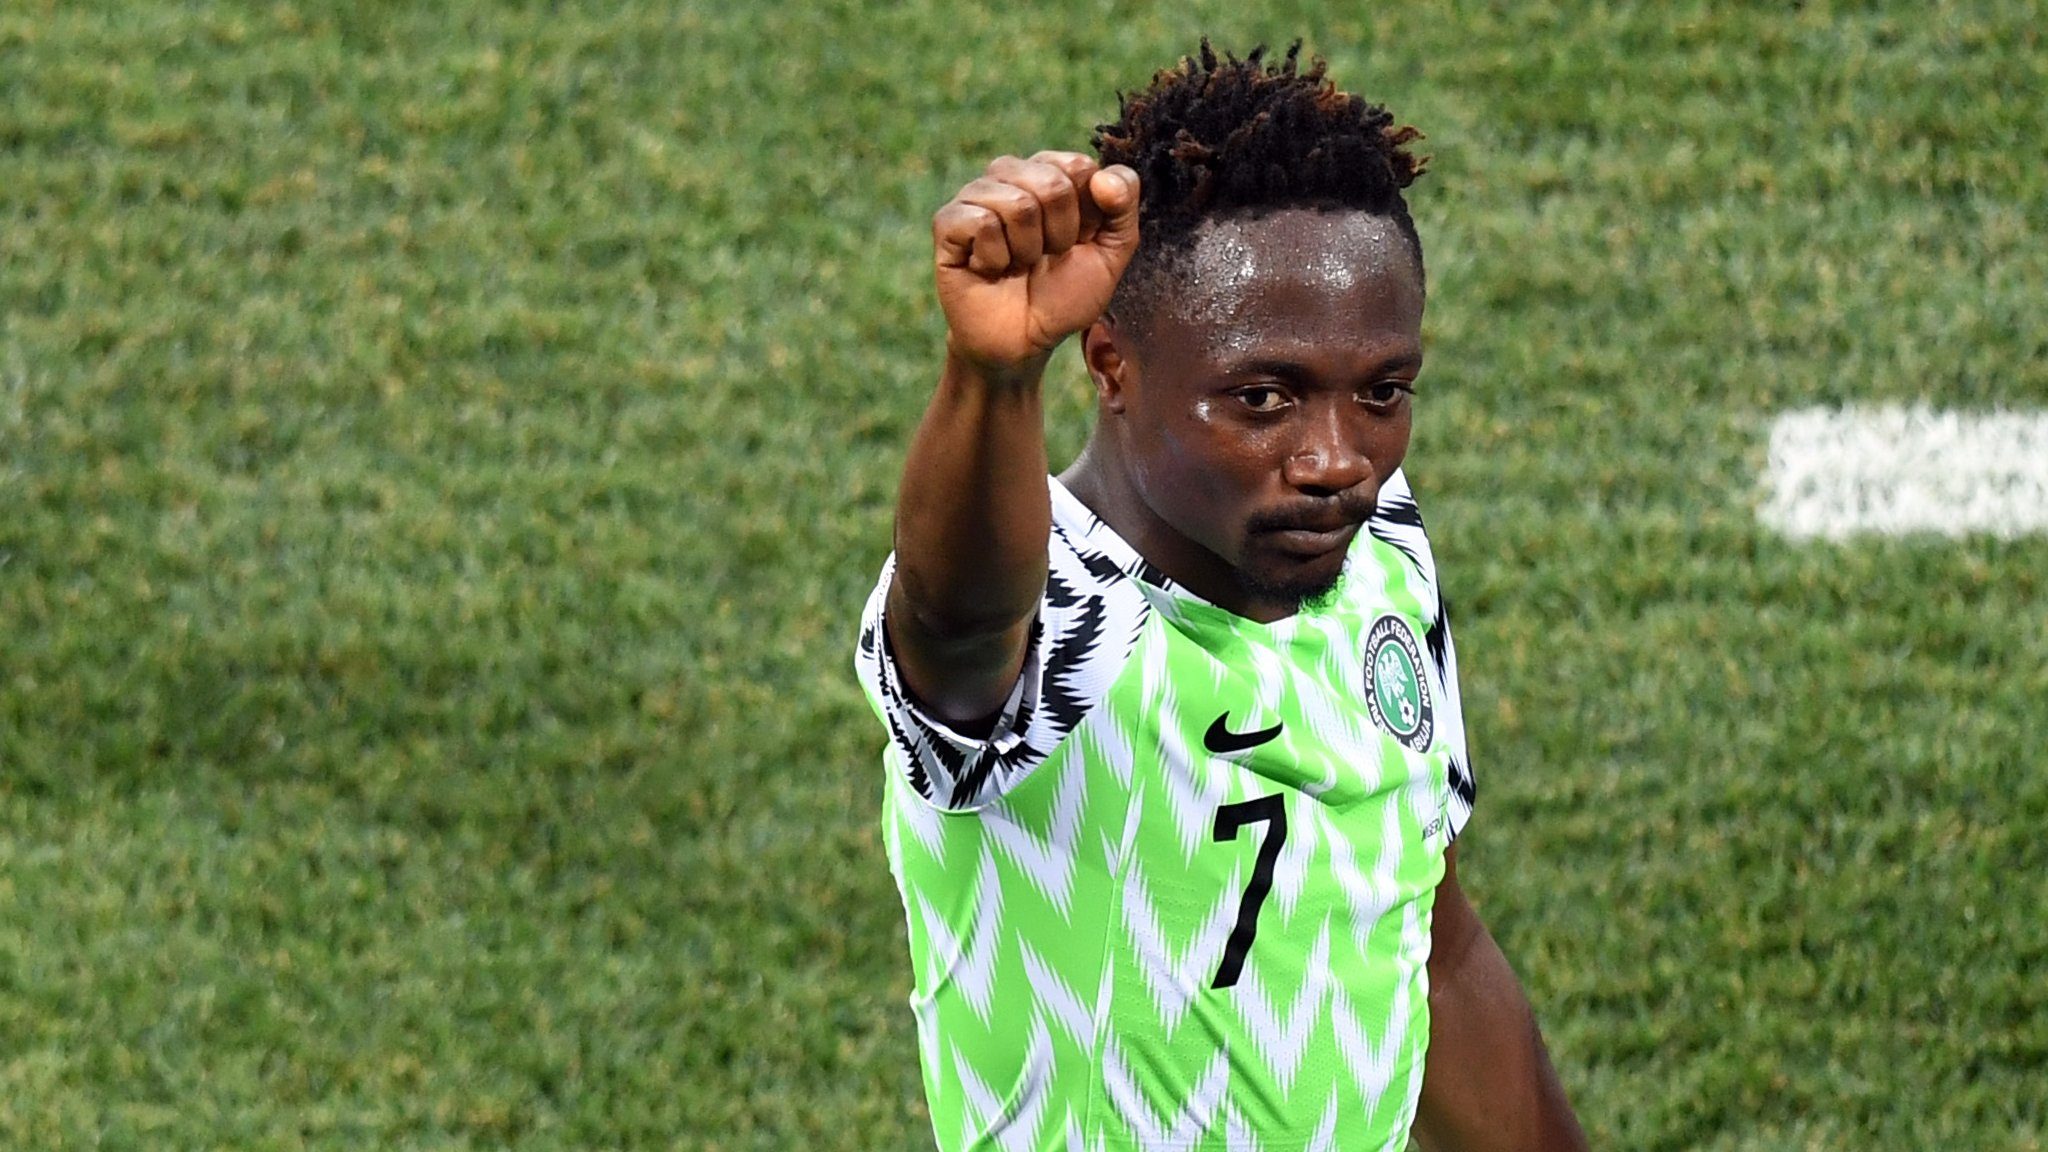 World Cup 2018: Nigeria v Iceland - Ahmed Musa is highest-rated player